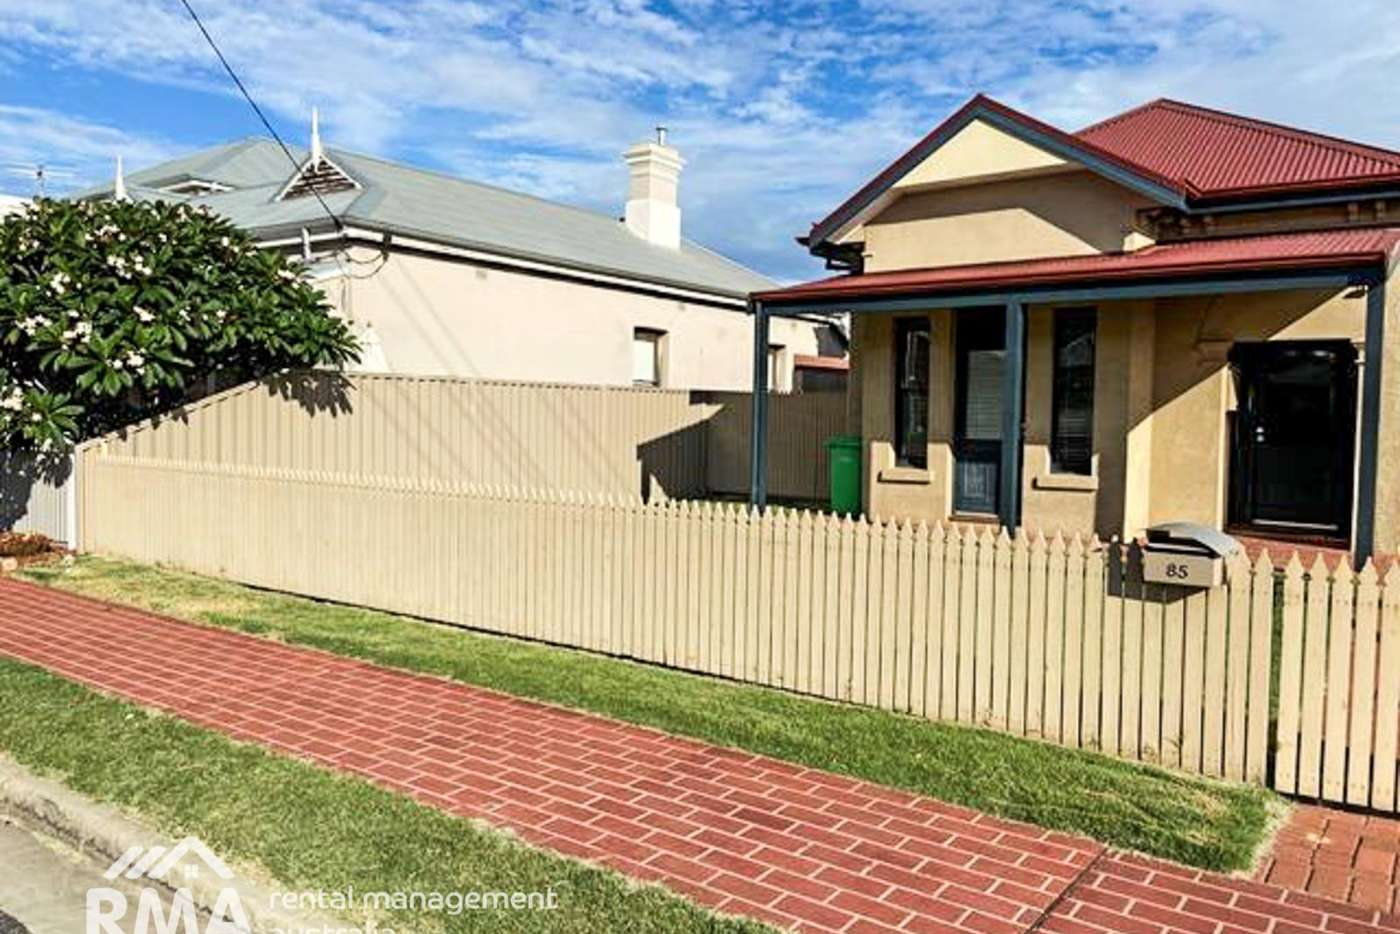 Main view of Homely house listing, 85 Stirling Street, Bunbury WA 6230